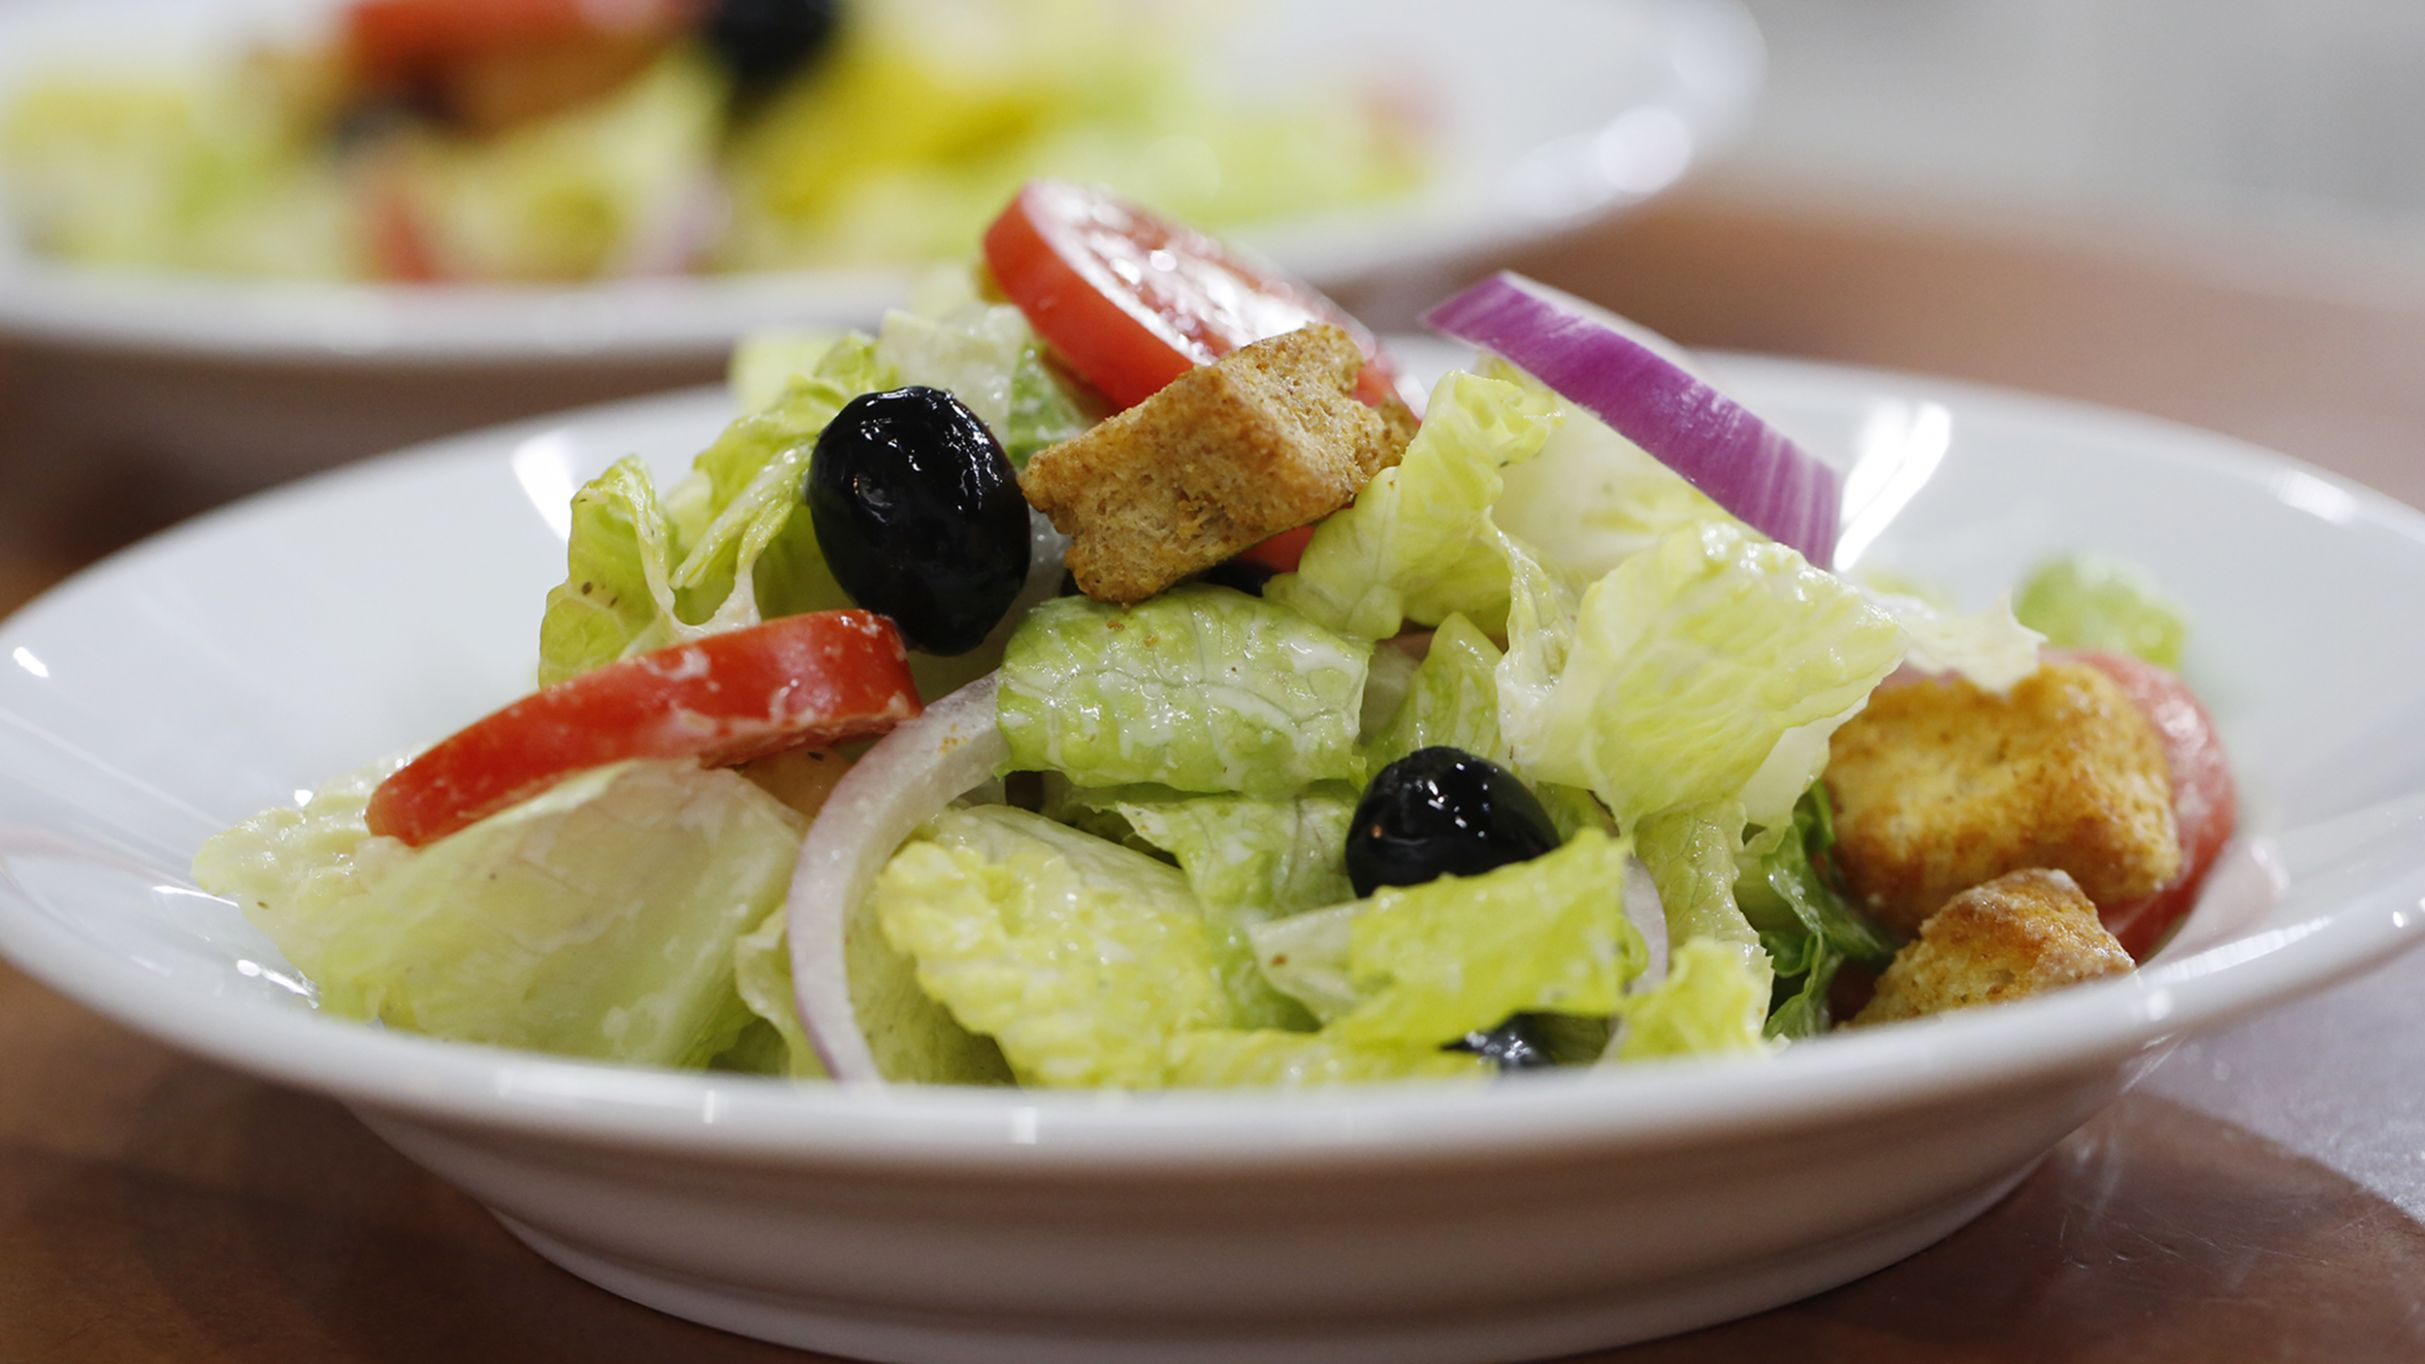 Olive Garden-Style Salad with Creamy Italian Dressing